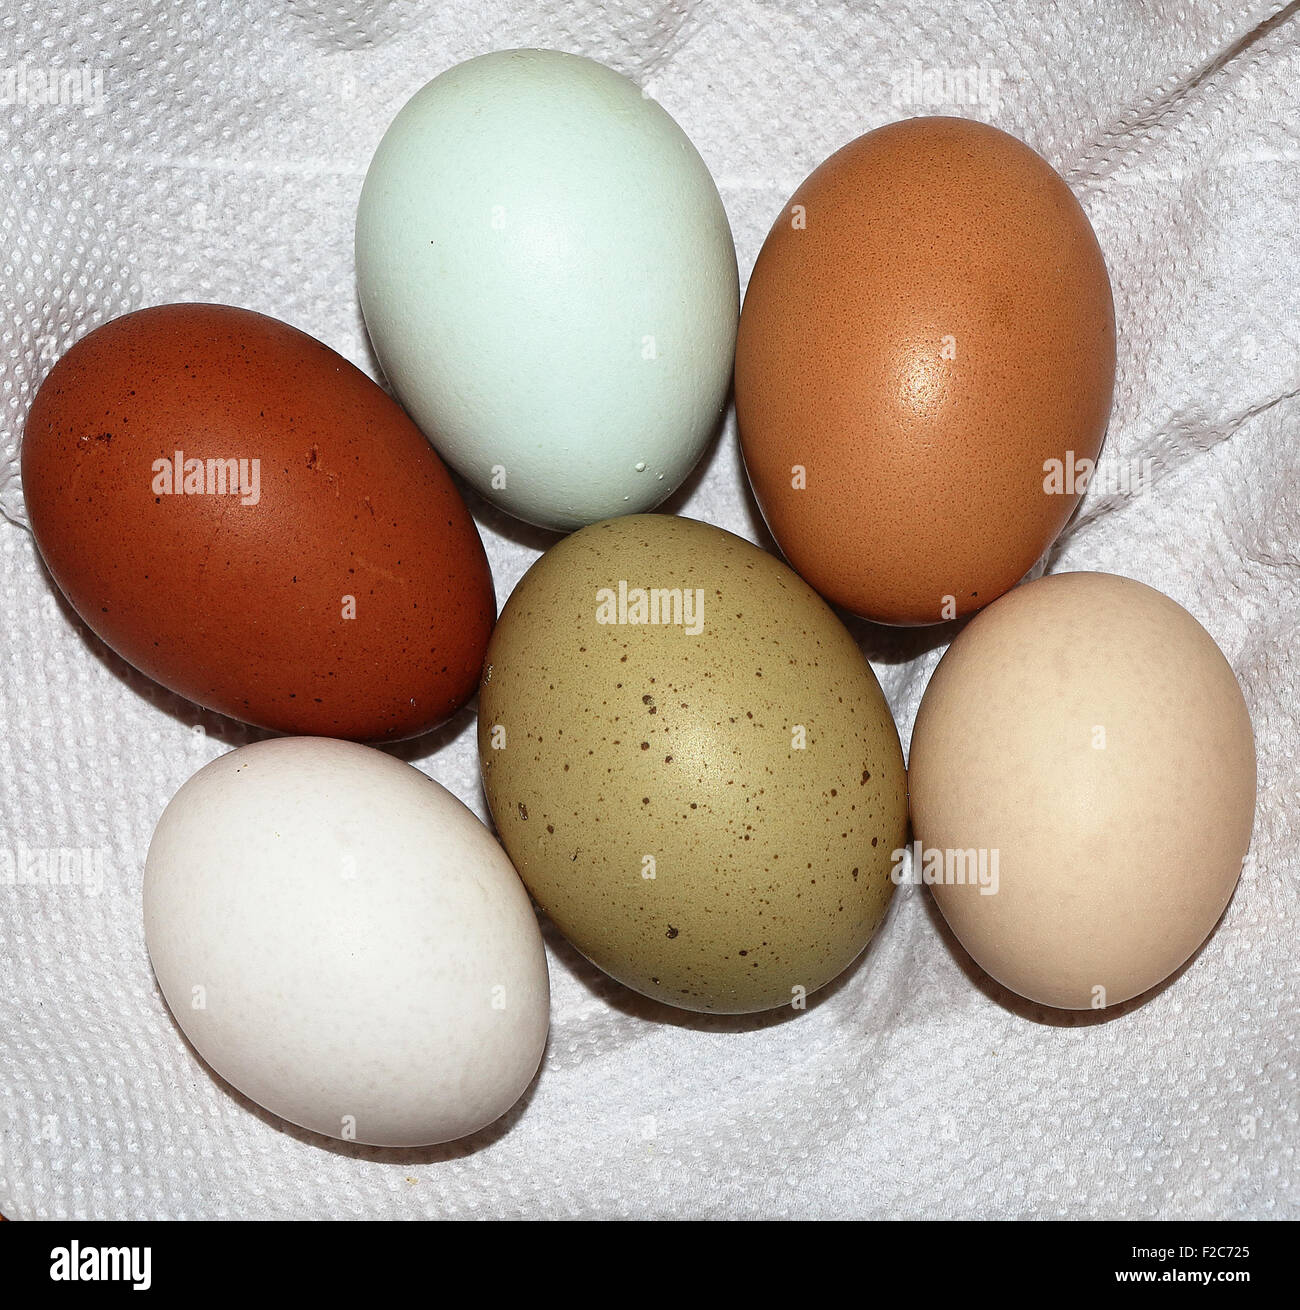 Six rare breed colourful chicken and duck eggs - Stock Image